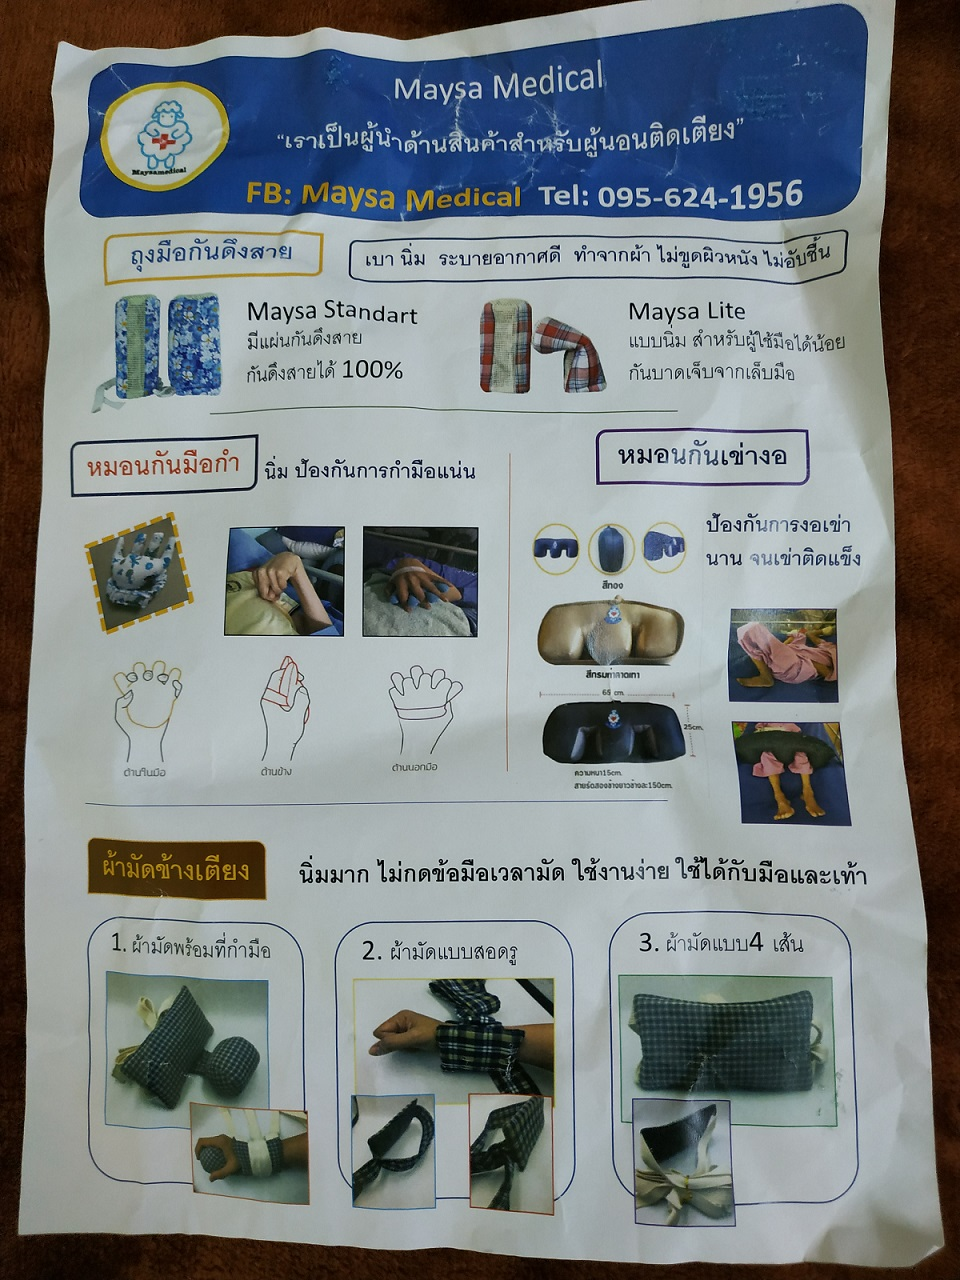 tiehands brochure1 - Hand restraints/special mittens for Alzhmeimer's/dementia patients on tube feeding